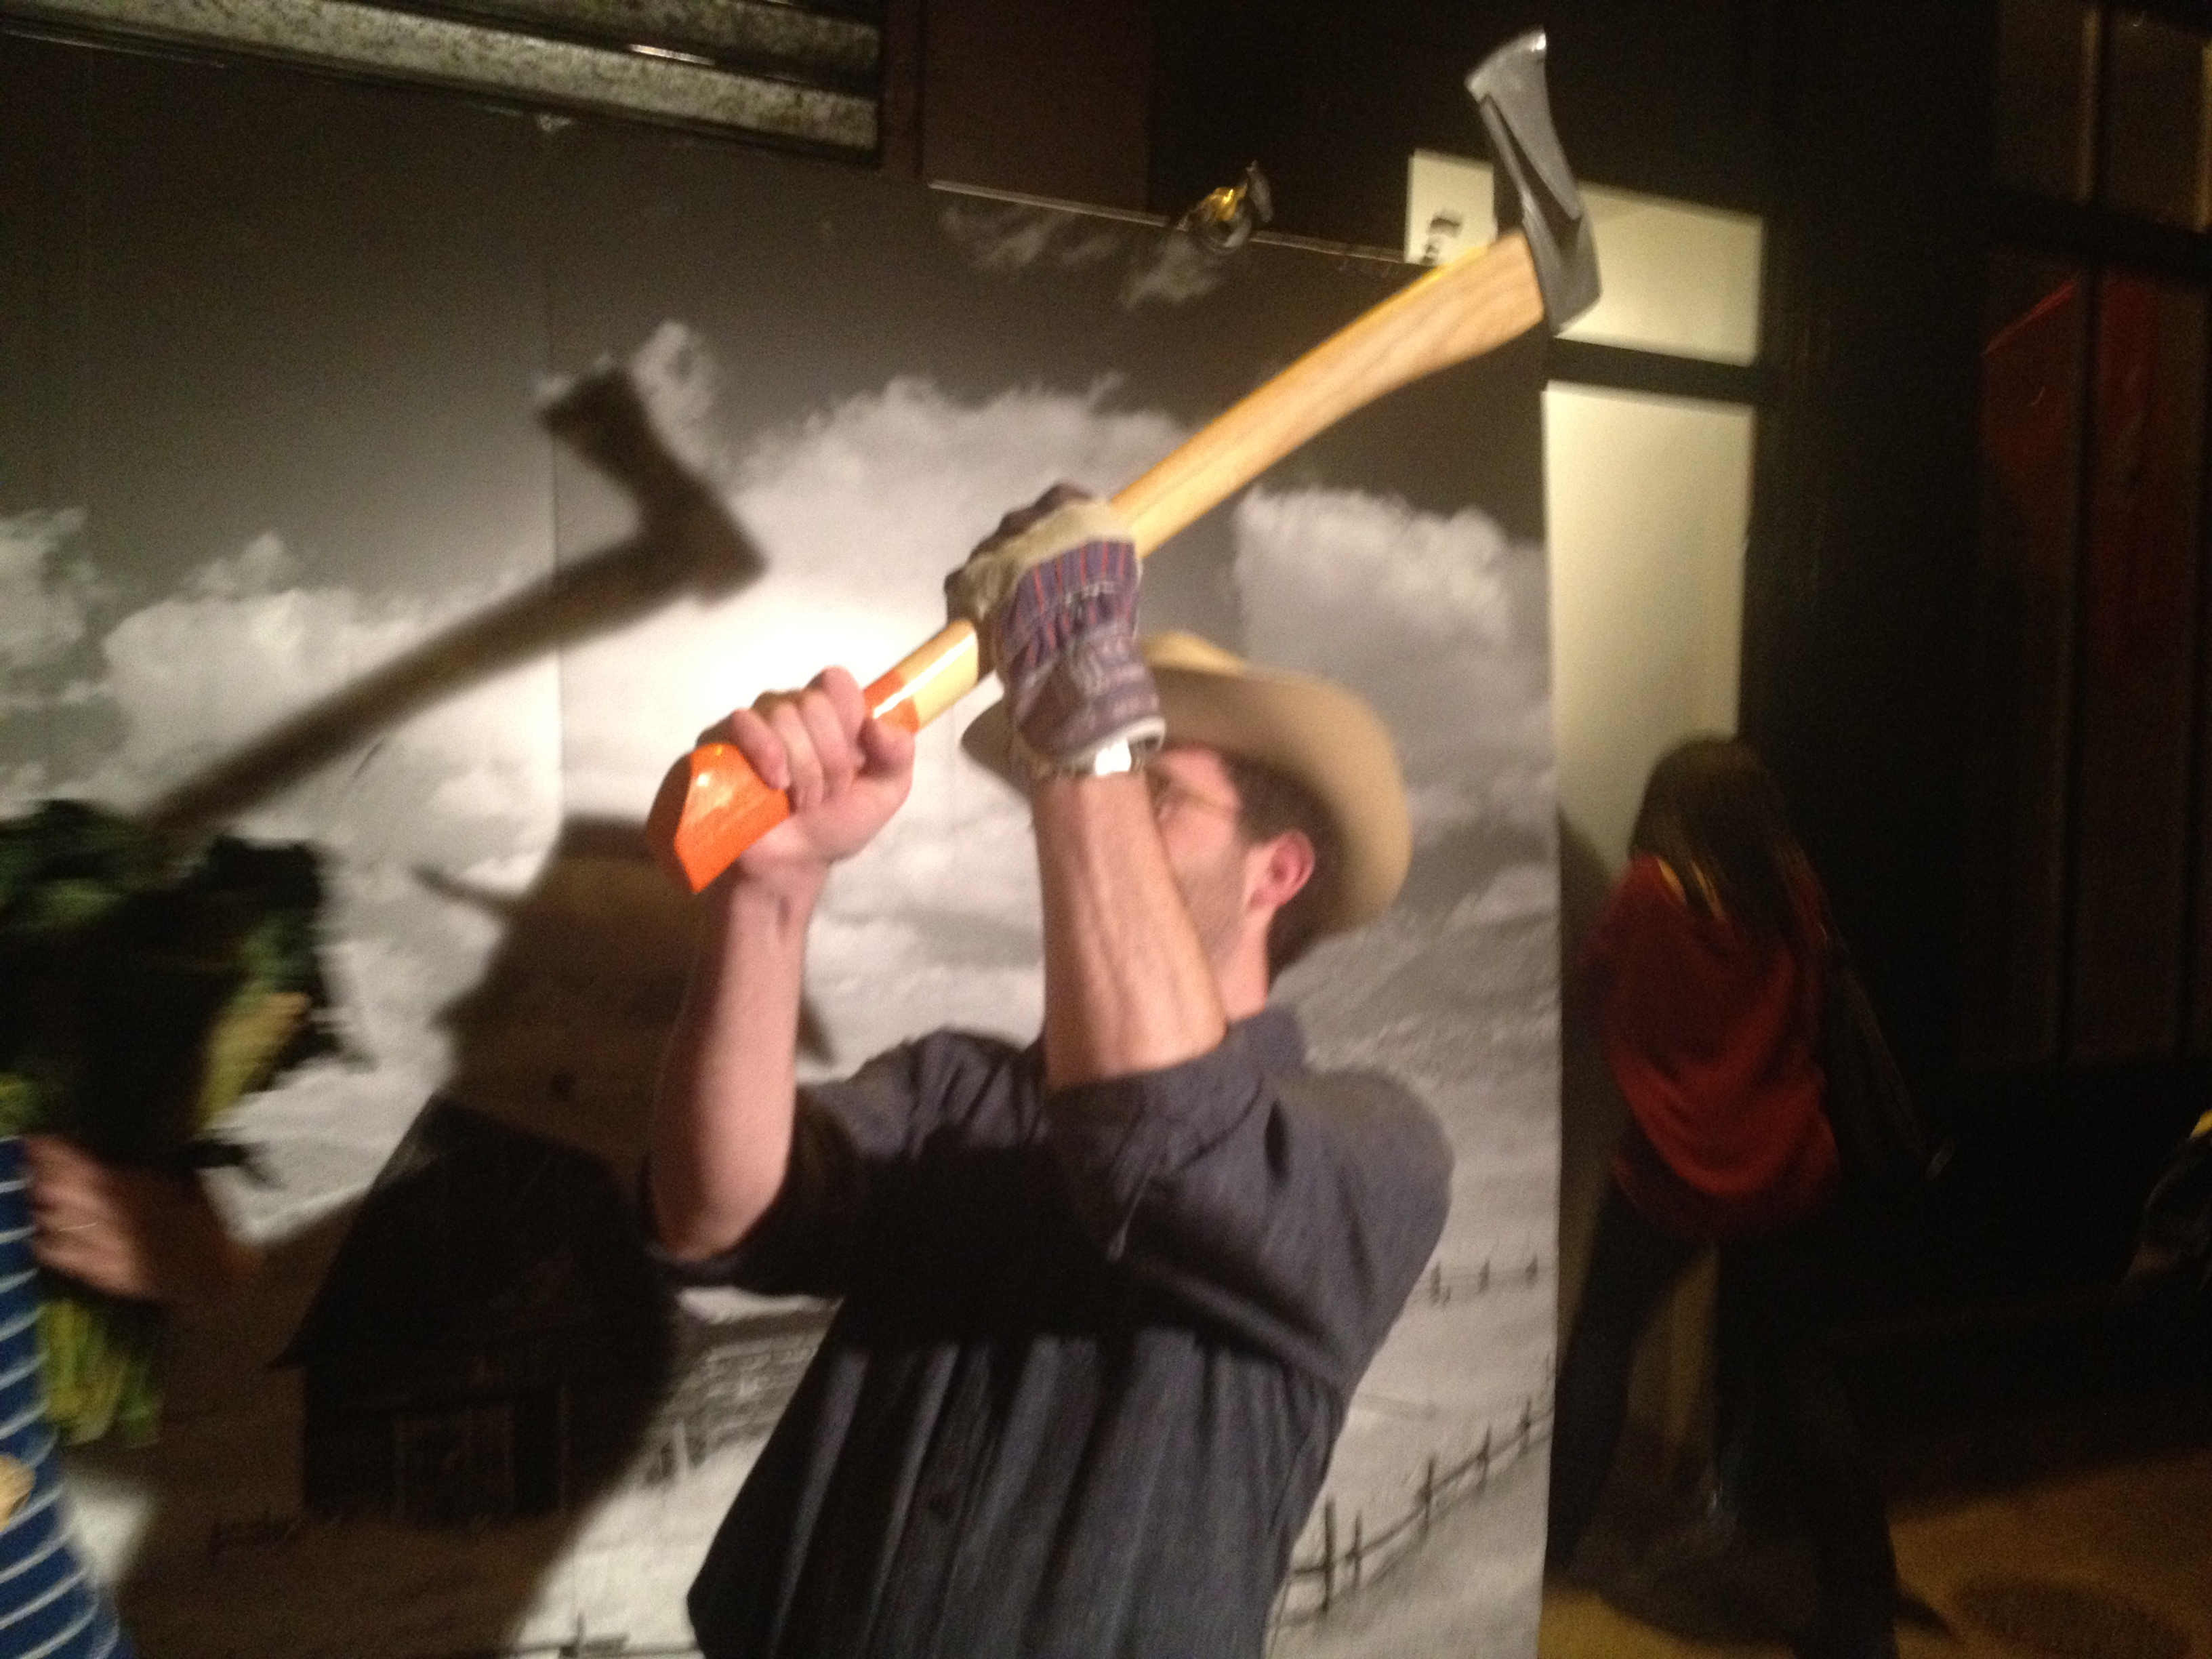 Braden Perkins (Verjus restaurant) tests the traveling photo booth outside the Sporting Project's first pop-up.